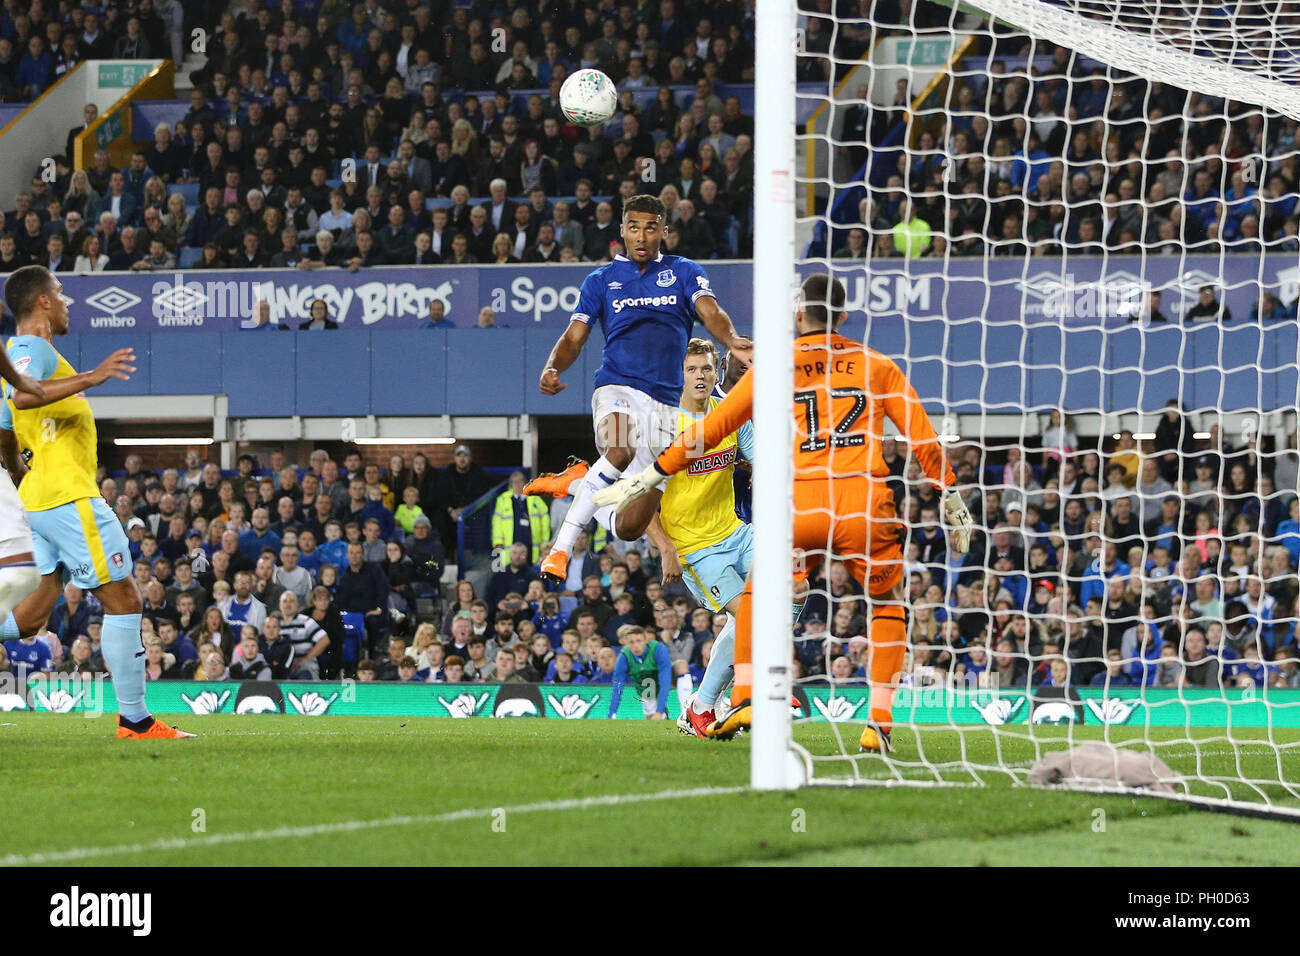 Liverpool Uk 29th August 2018 Dominic Calvert Lewin Of Everton Jumps To Head The Ball To